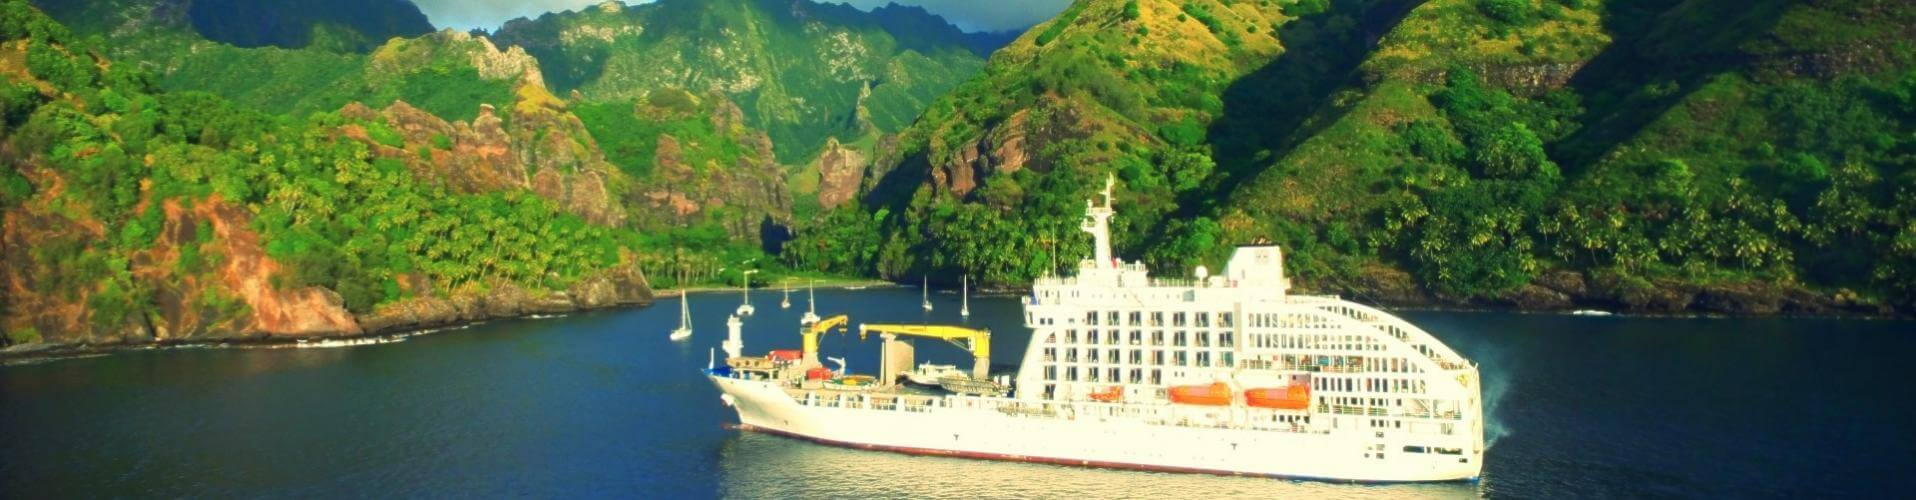 Aranui 5 Cruise from Tahiti to the Marquesas Islands